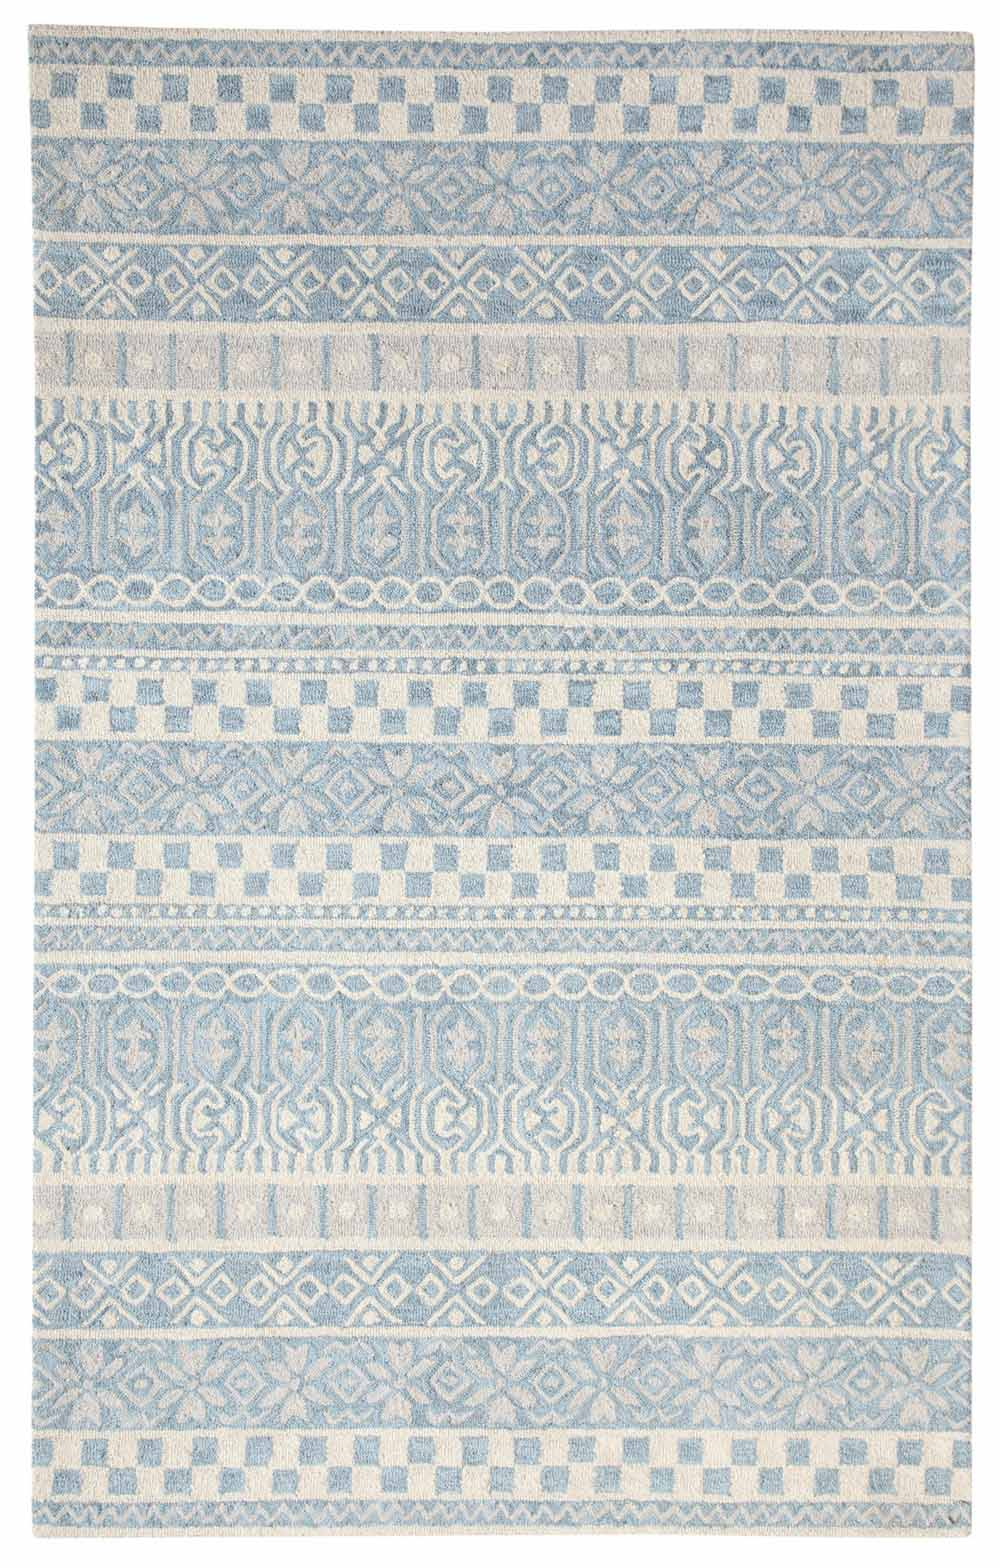 Dynamic Area Rugs Galleria 7863-500 Blue Geometric Design